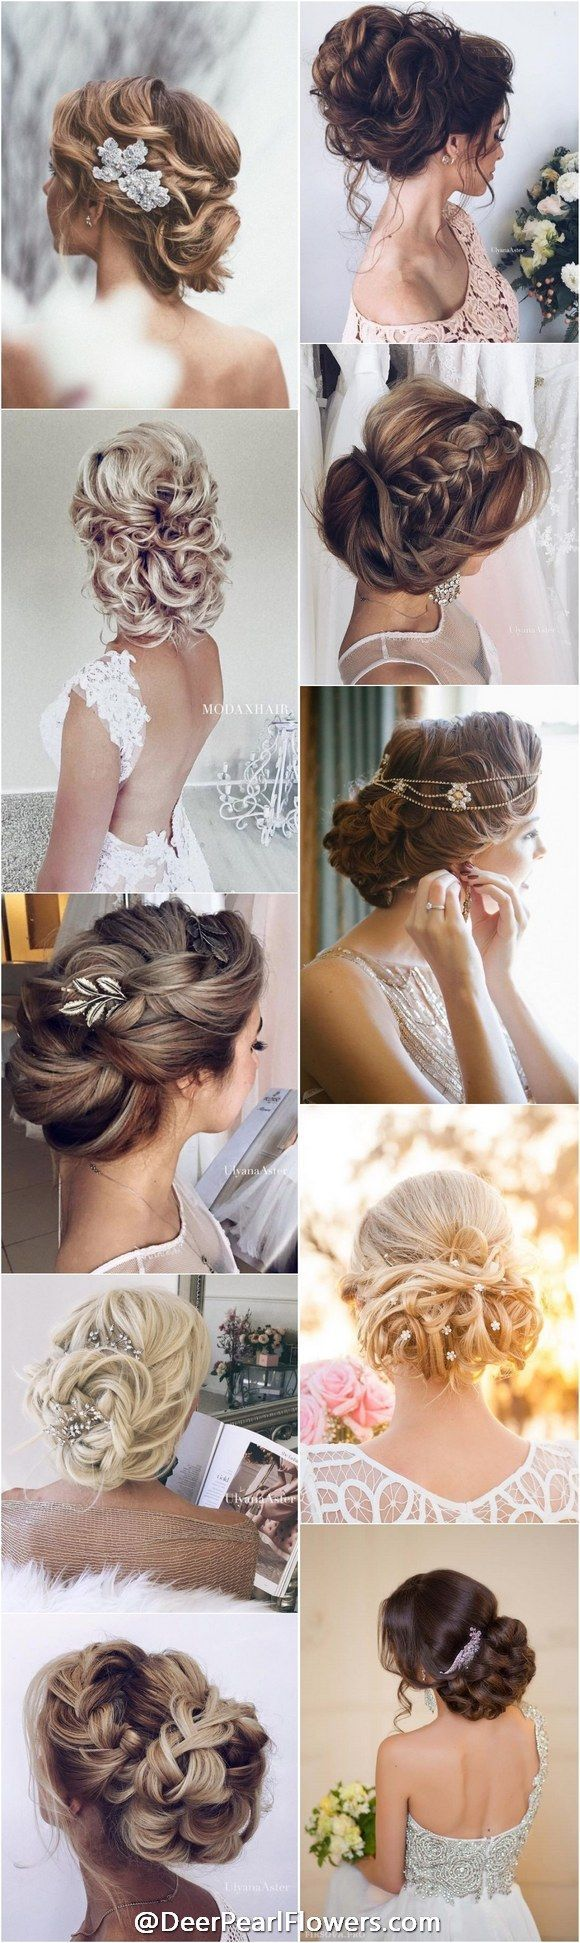 best 25+ country wedding hairstyles ideas on pinterest | country